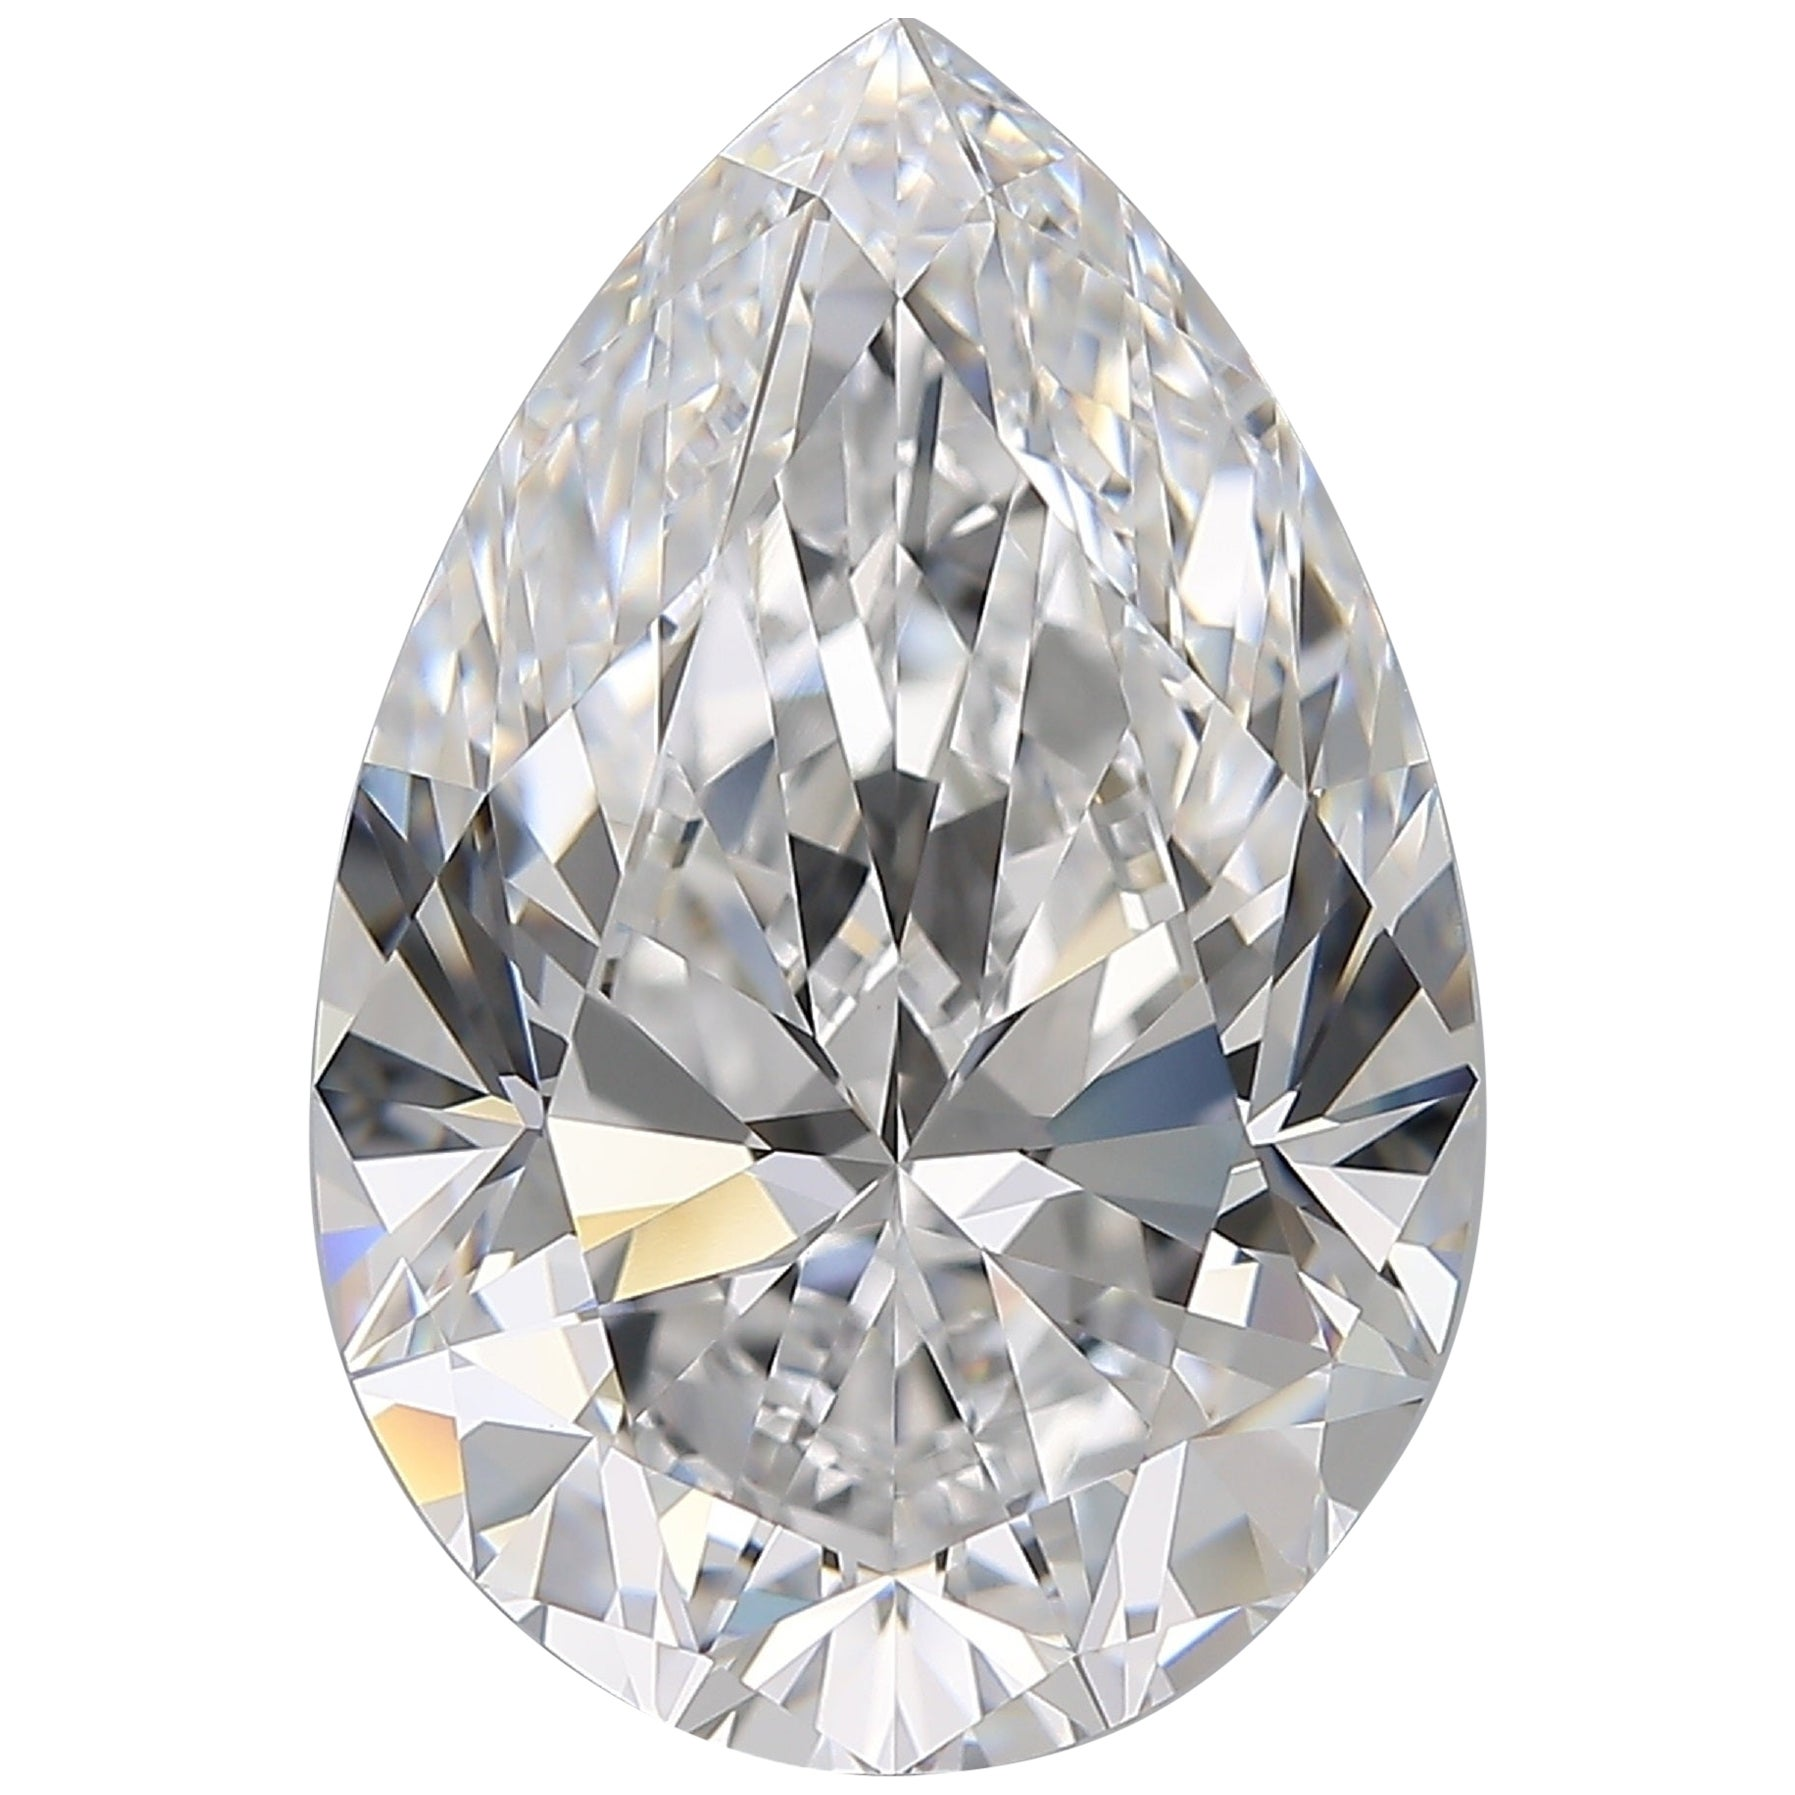 Flawless Clarity D Color GIA Certified 10 Carat Pear Cut Diamond